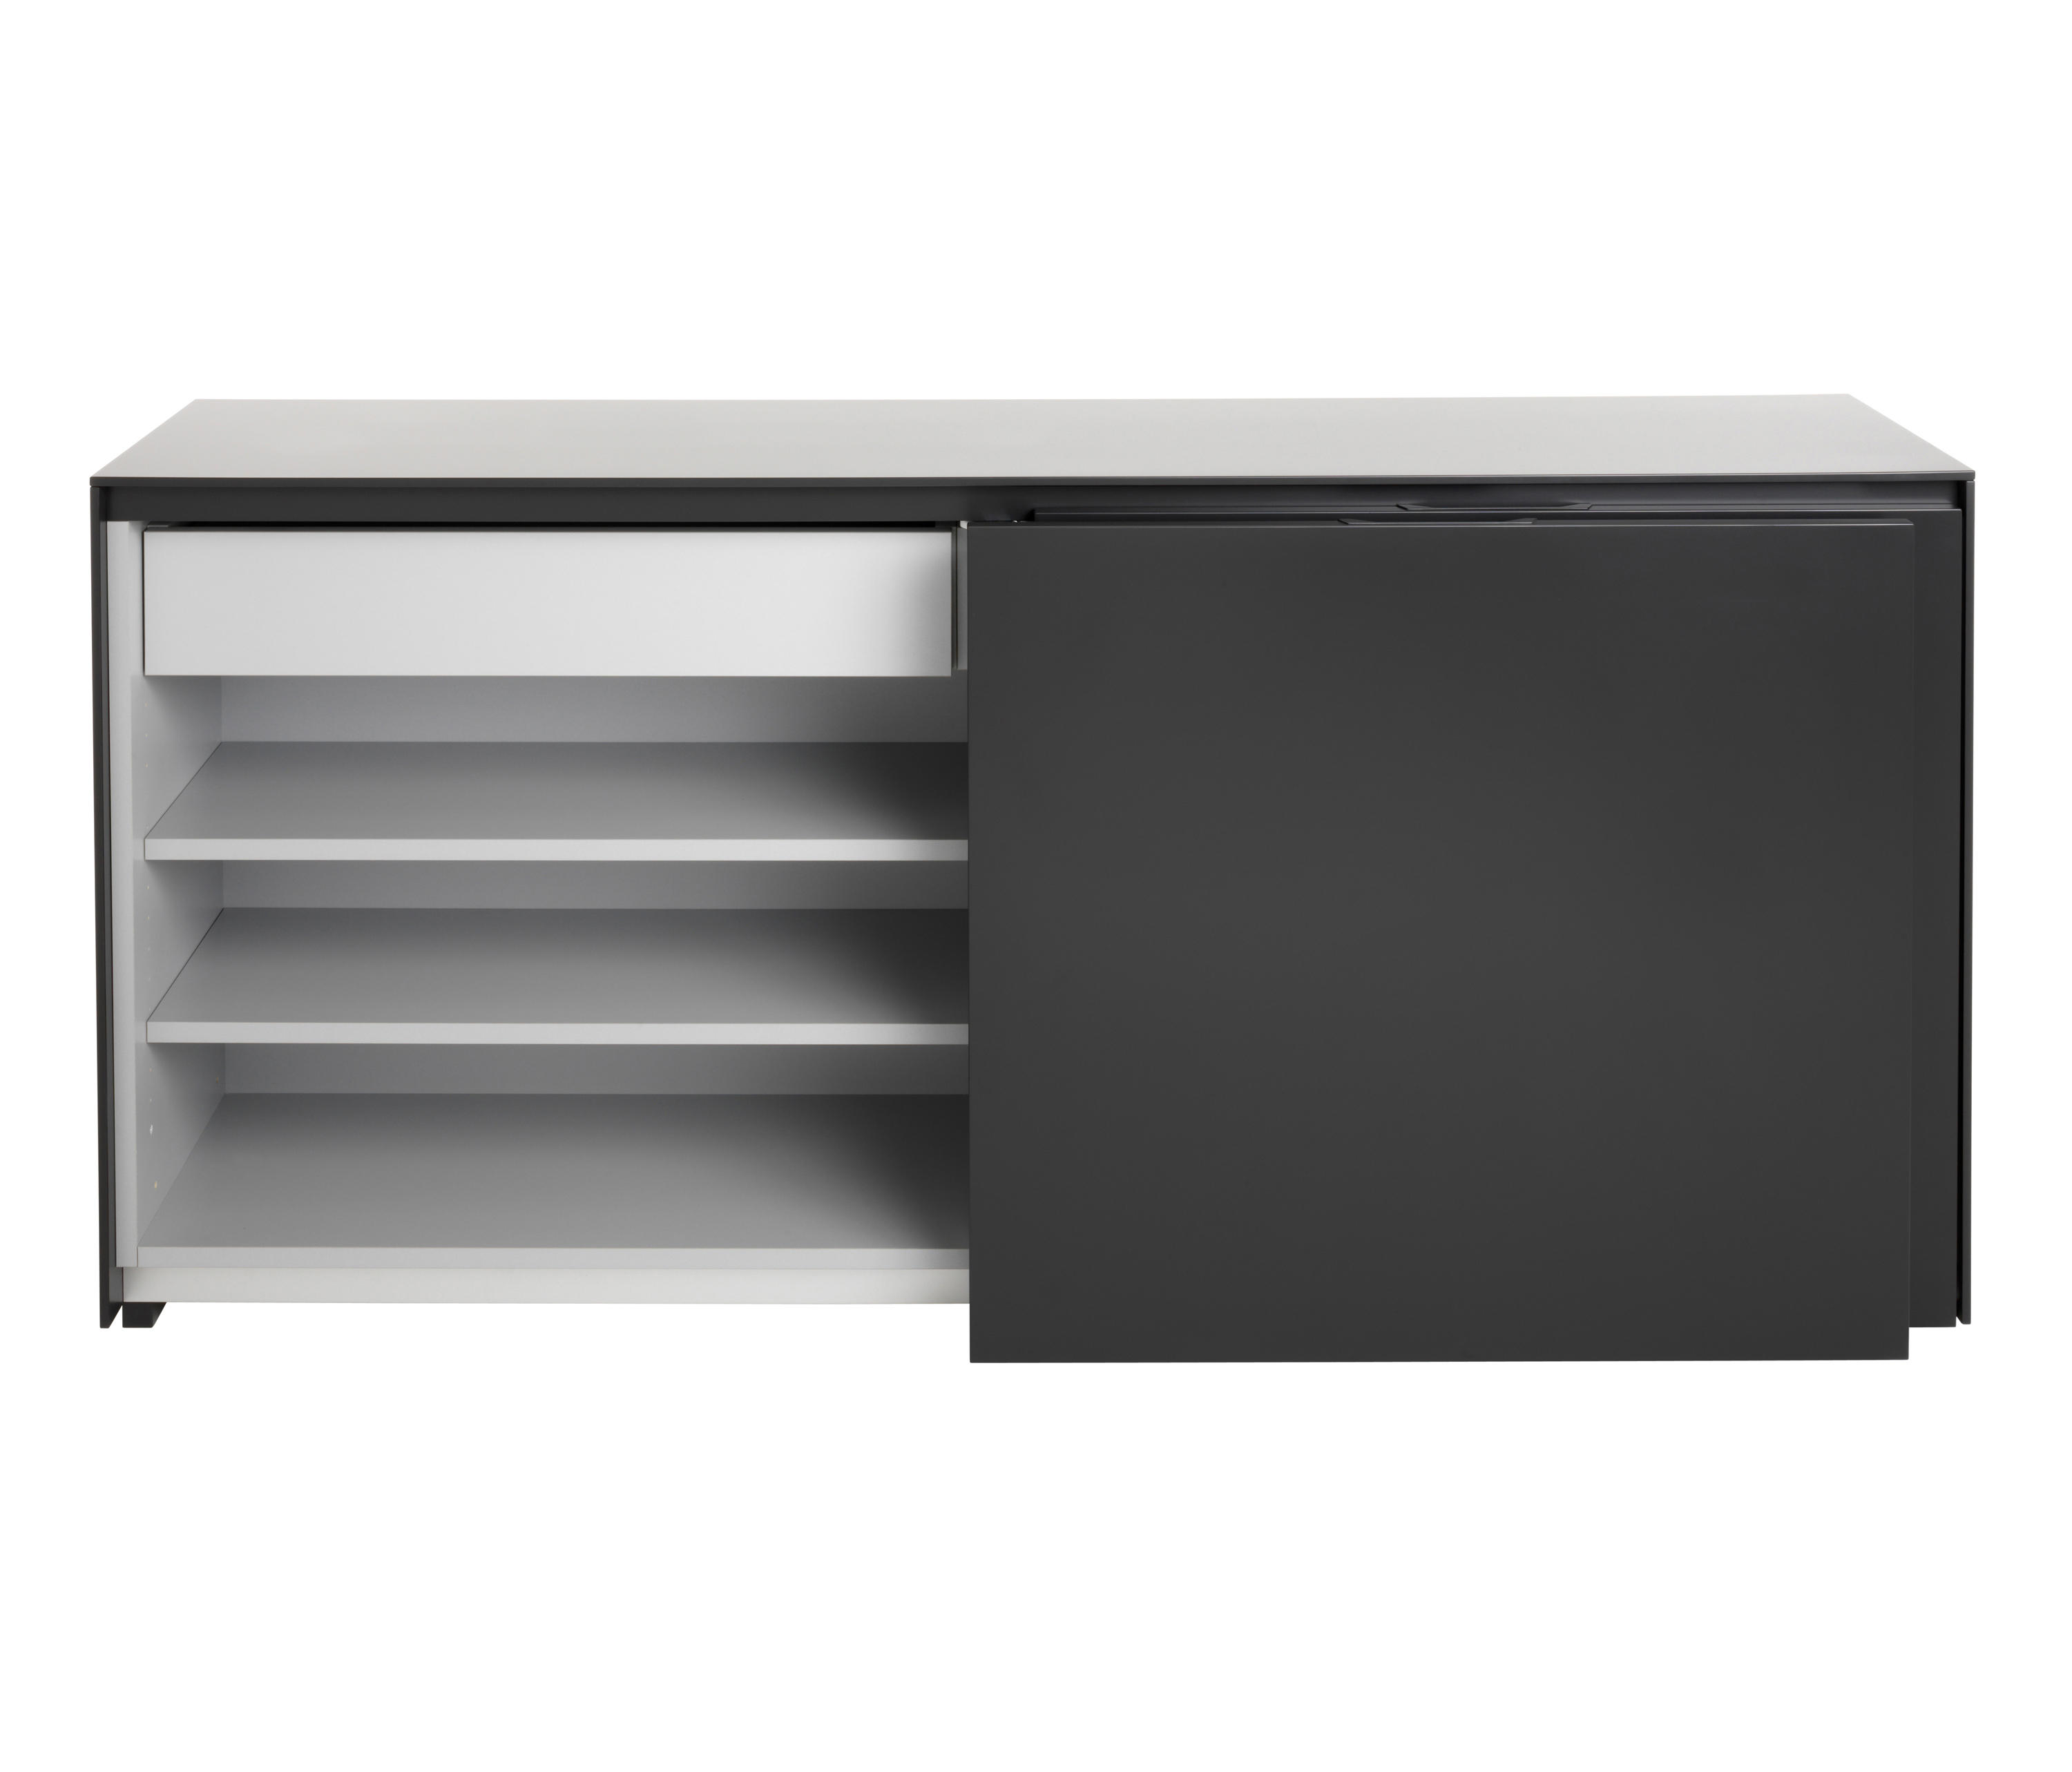 plain sideboard b roschr nke von sch nbuch architonic. Black Bedroom Furniture Sets. Home Design Ideas